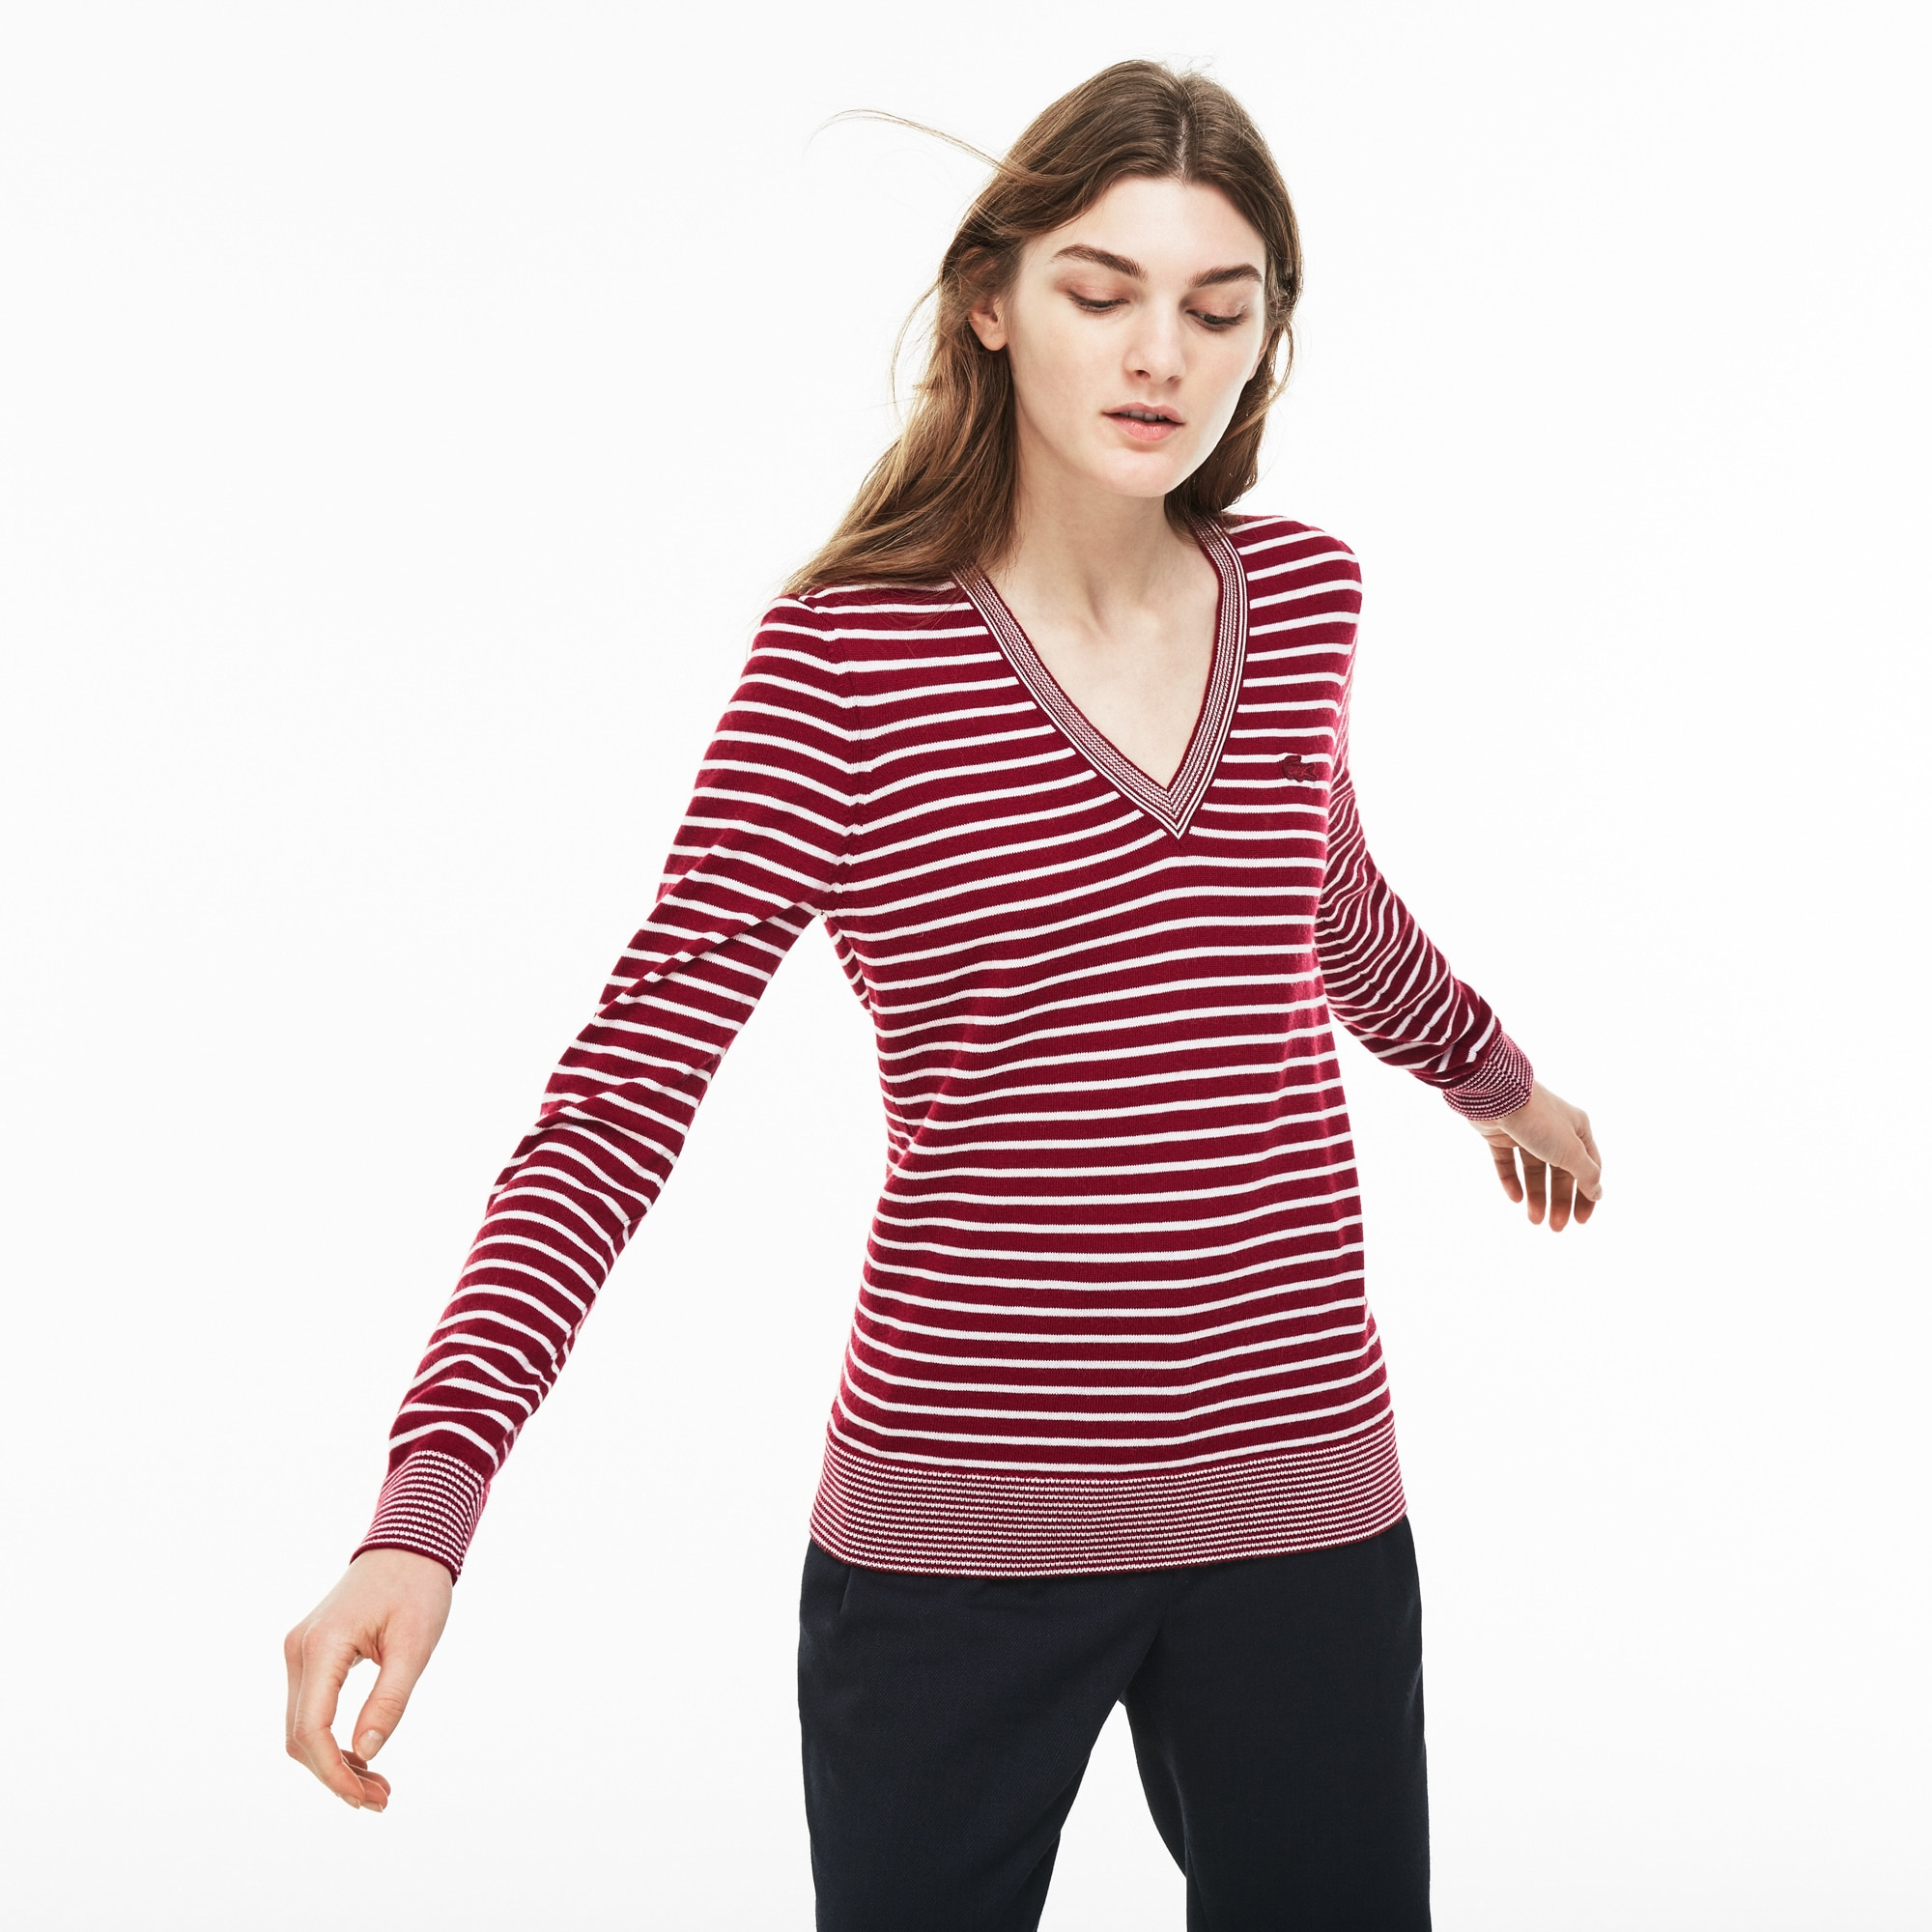 Women's V-neck Bicolor Striped Wool Jersey Sweater